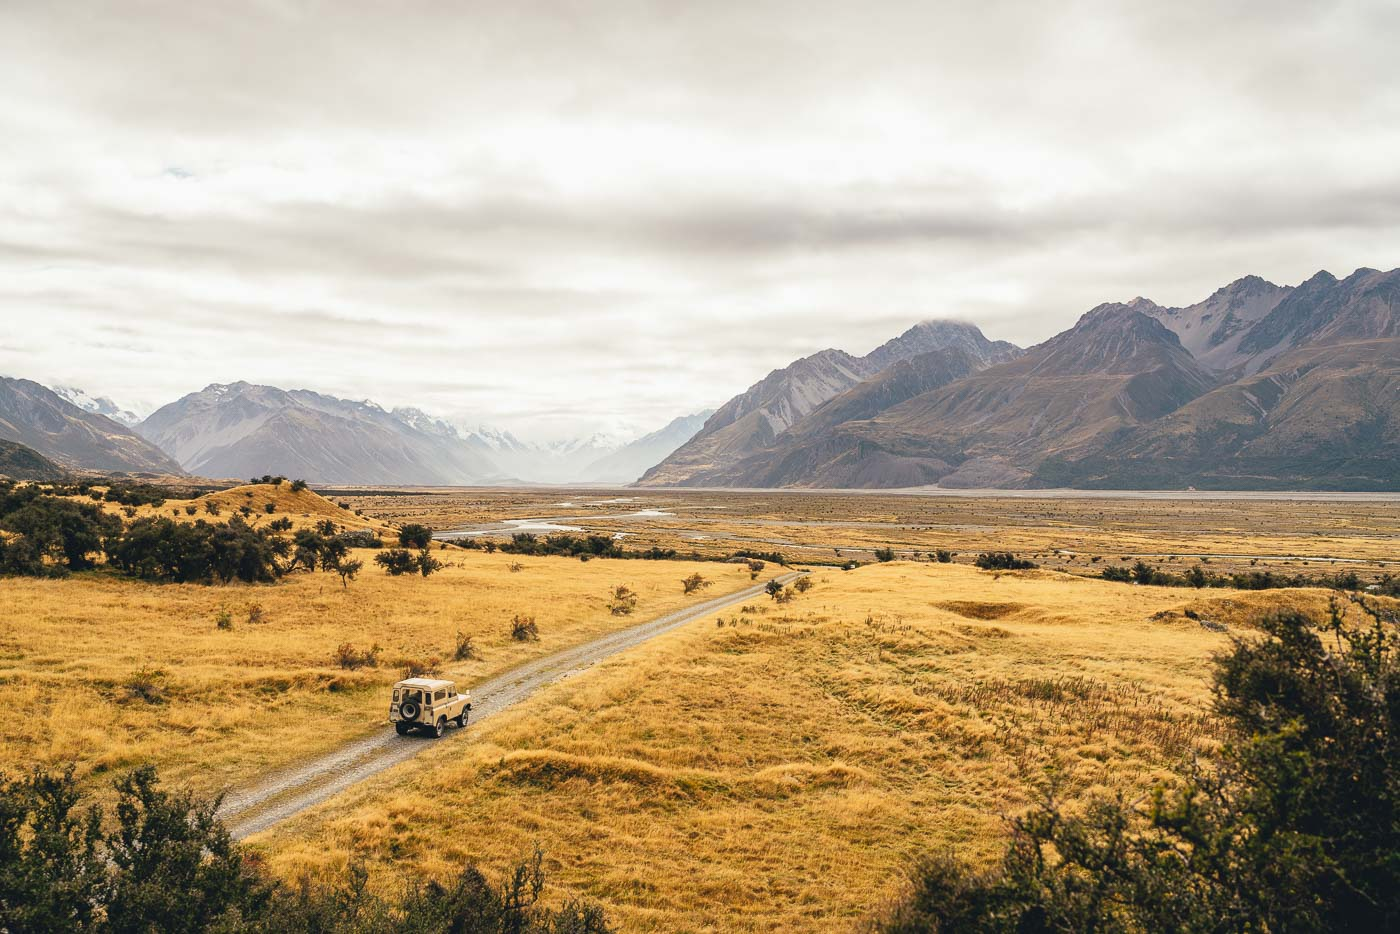 Land Rover Driving through the Mount Cook National Park, NZ